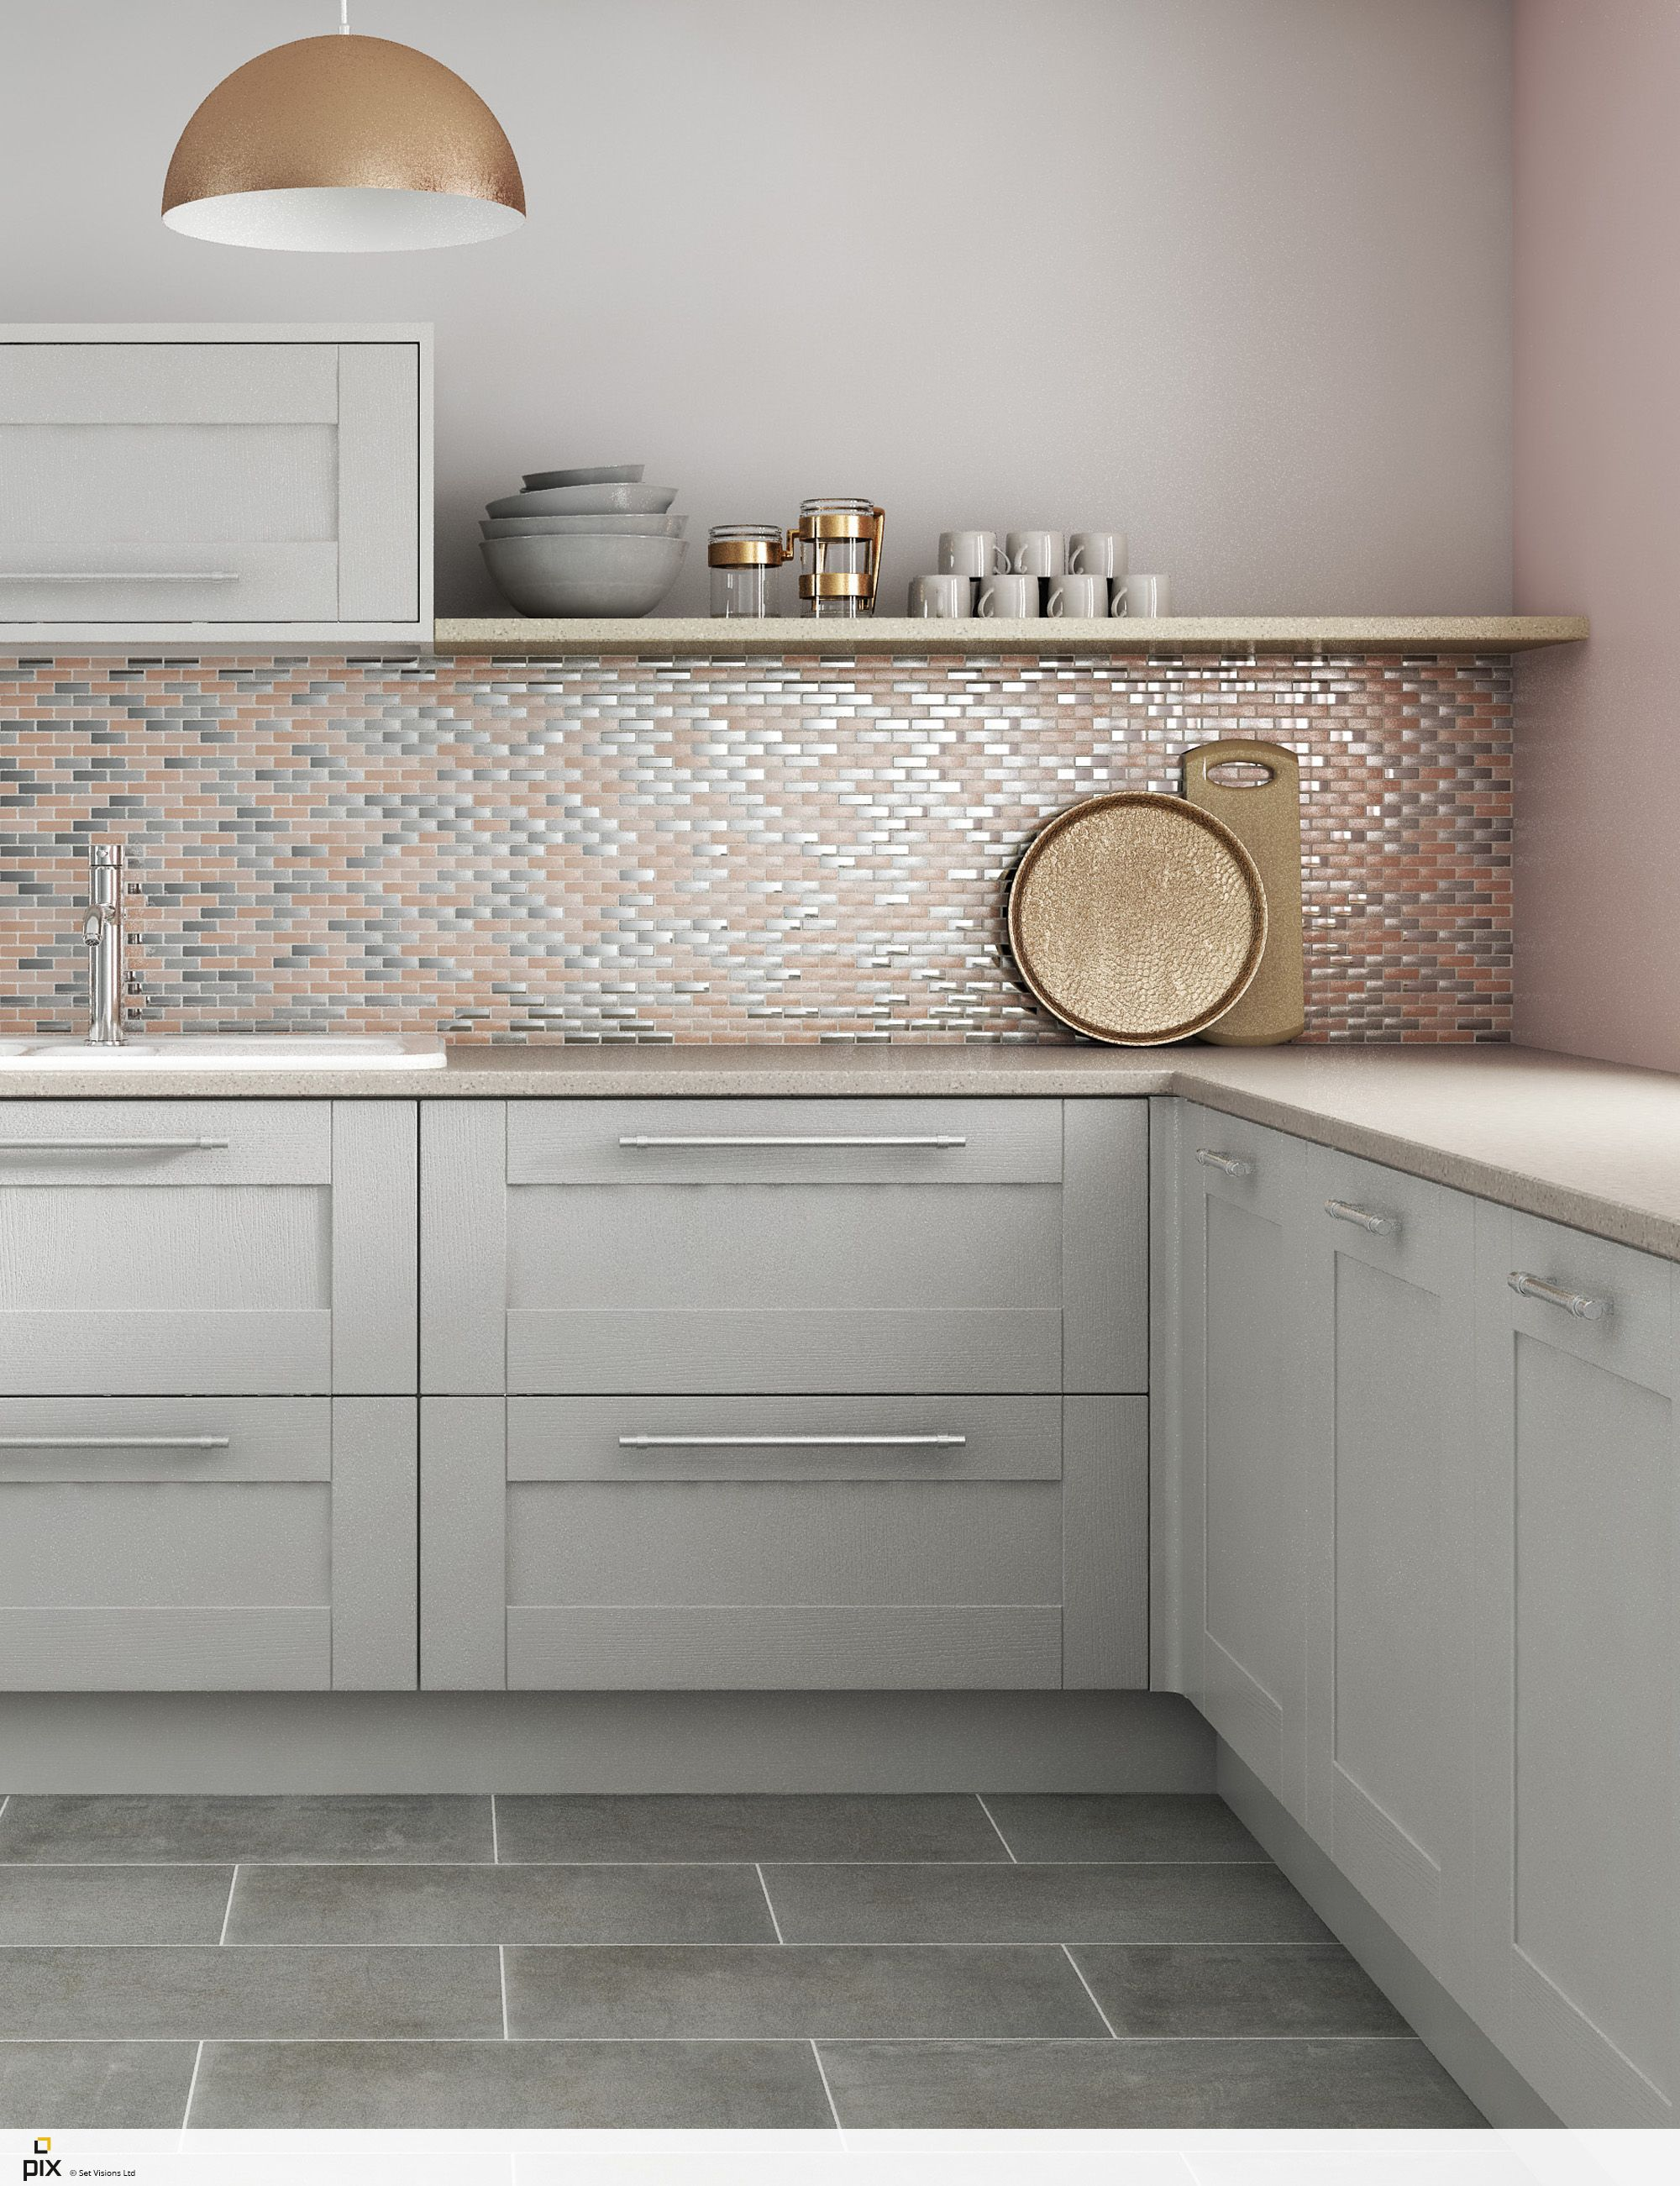 This On Trend Blush Copper And Metallic Mosaic Tile Shot